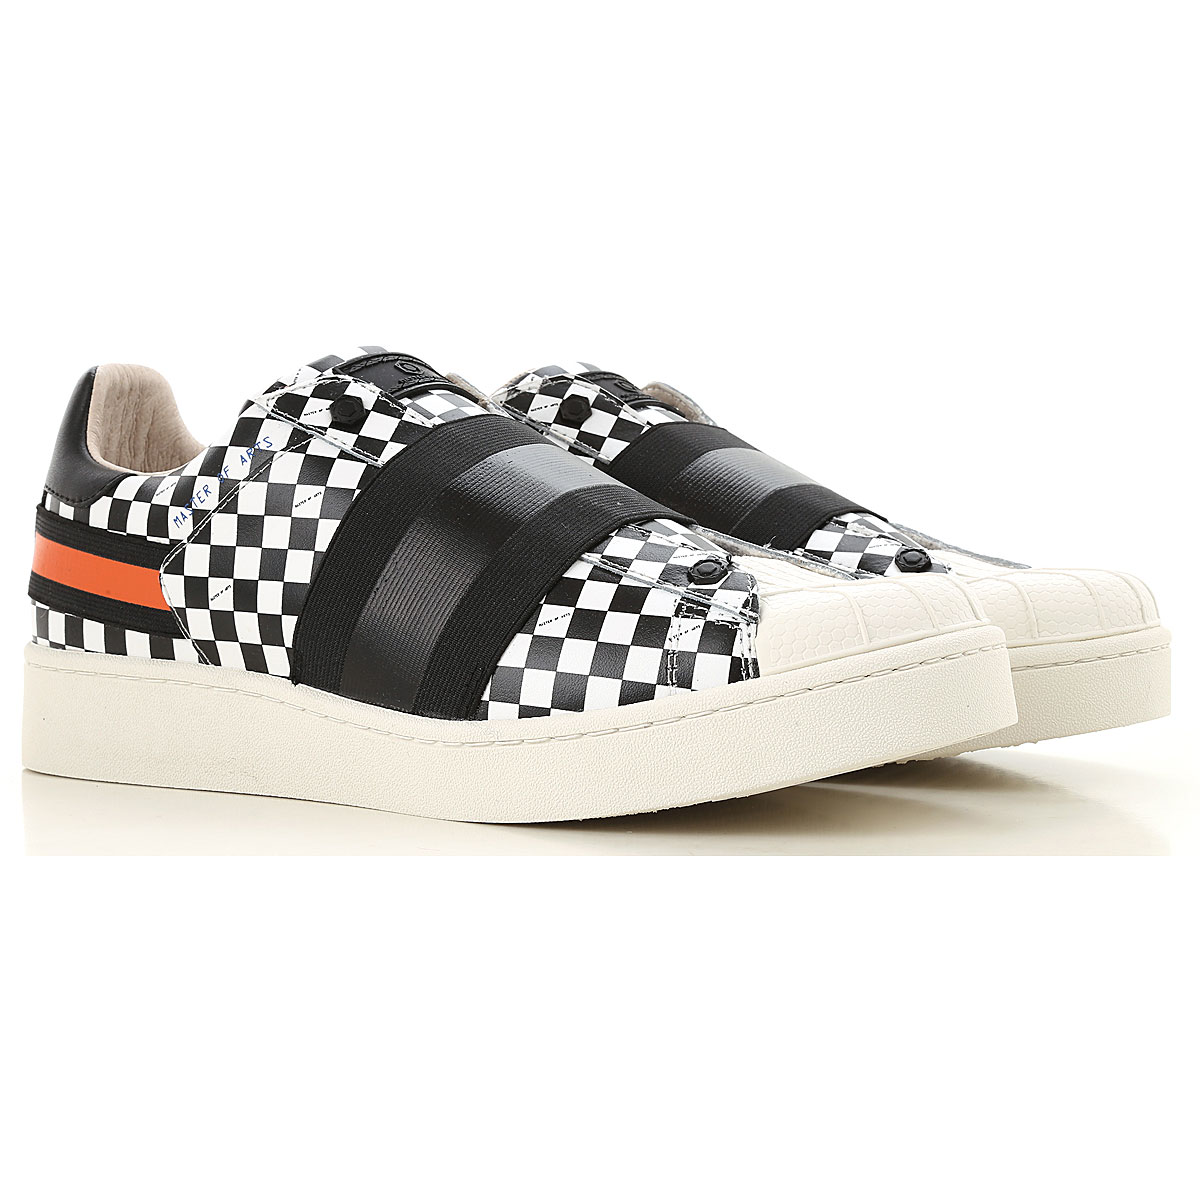 Image of Moa Master of Arts Slip on Sneakers for Men, Black, Leather, 2017, 10 10.5 7.5 8 9